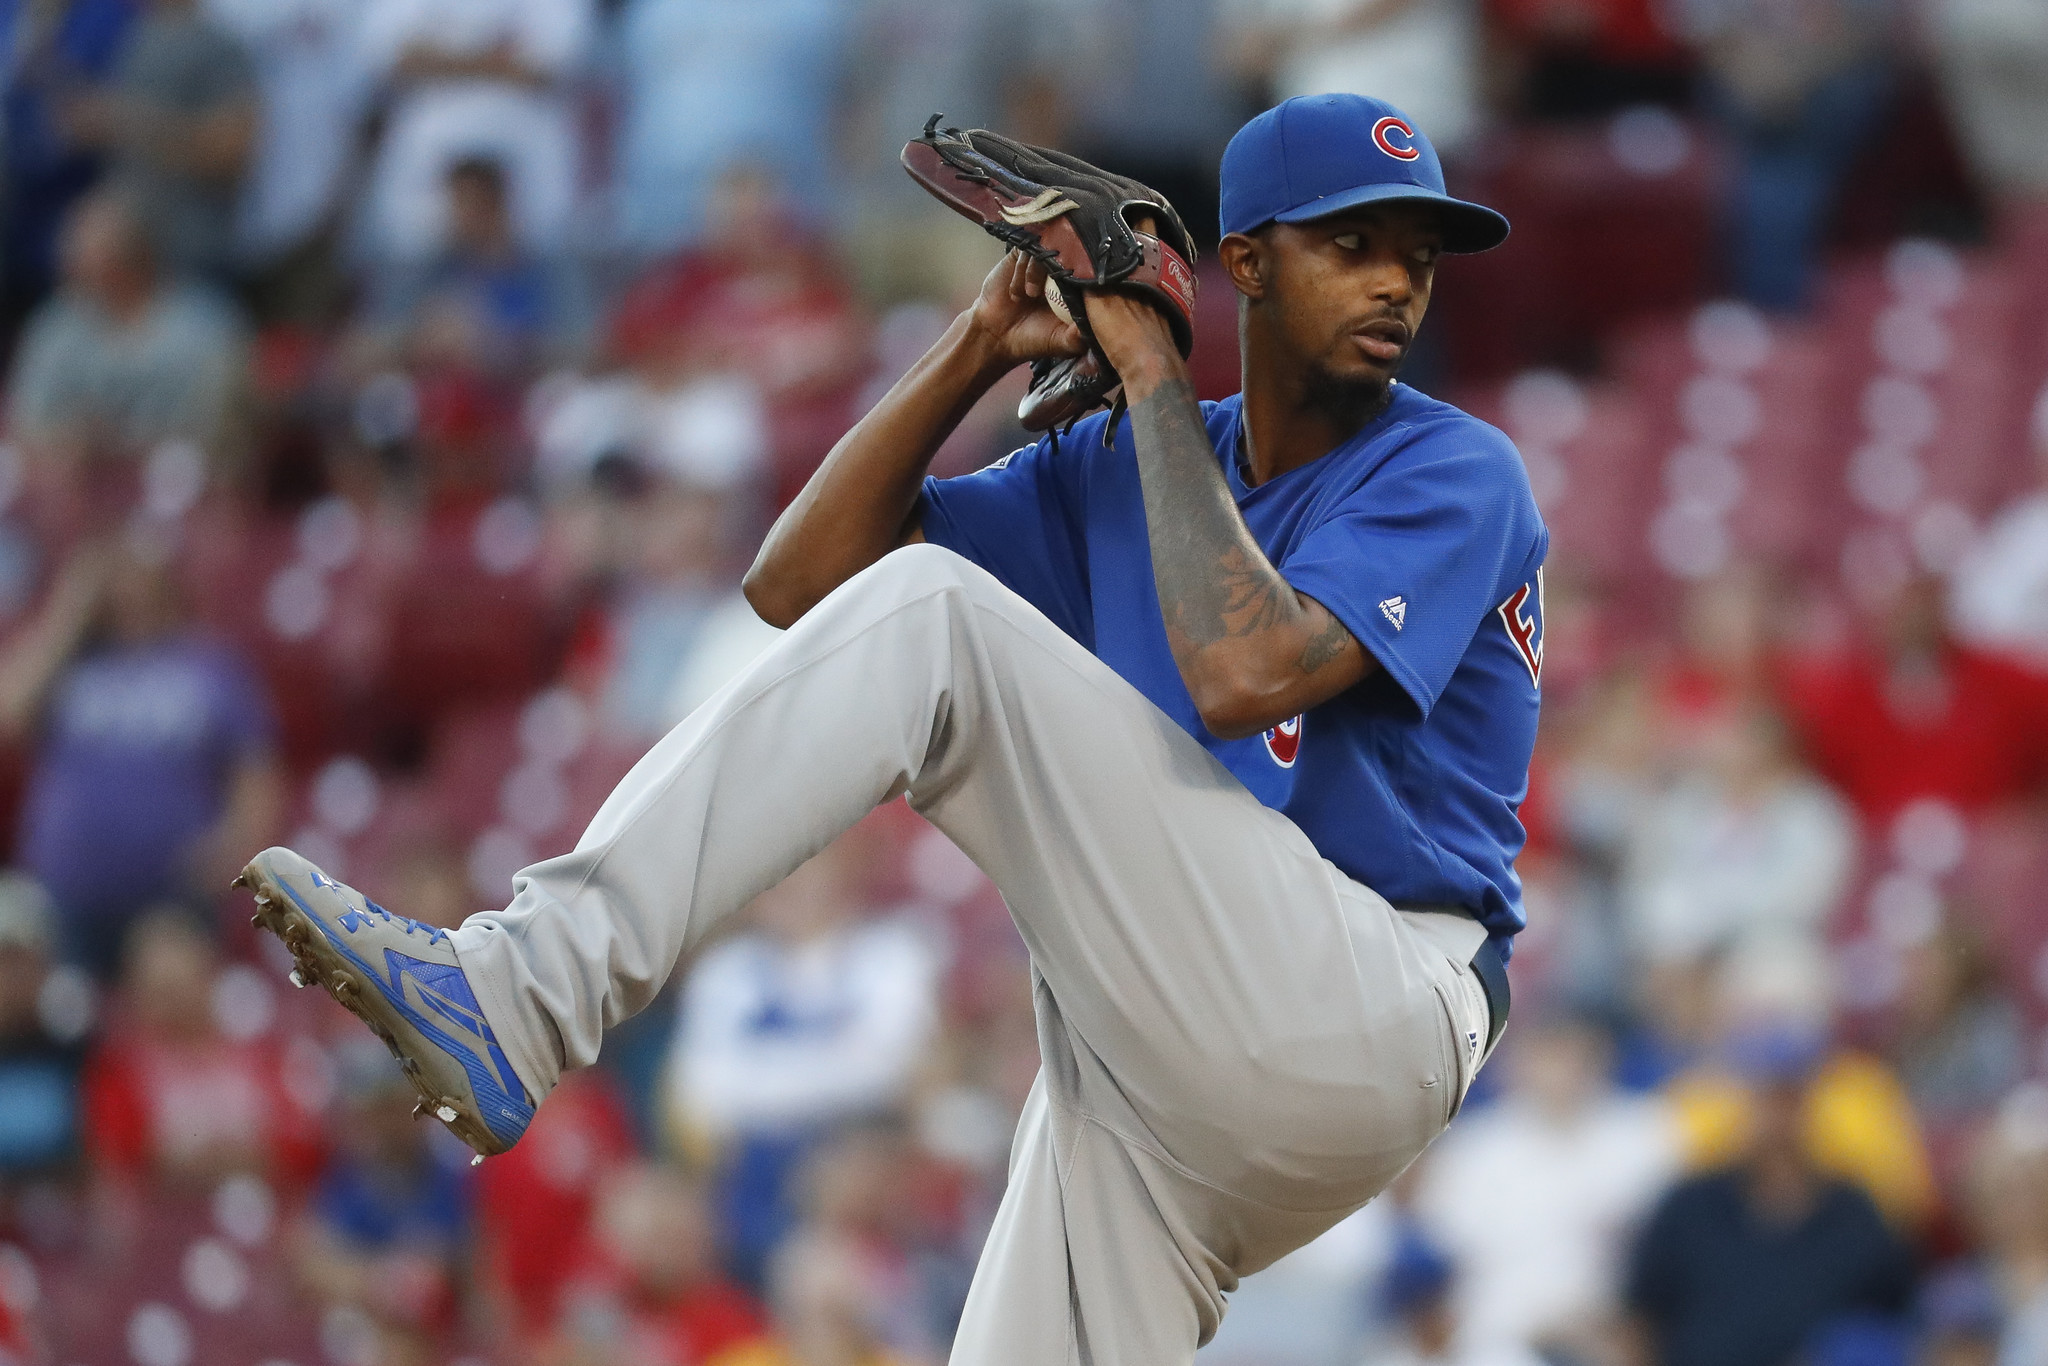 Ct-cubs-rookie-carl-edwards-jr-grateful-for-roster-spot-20161007